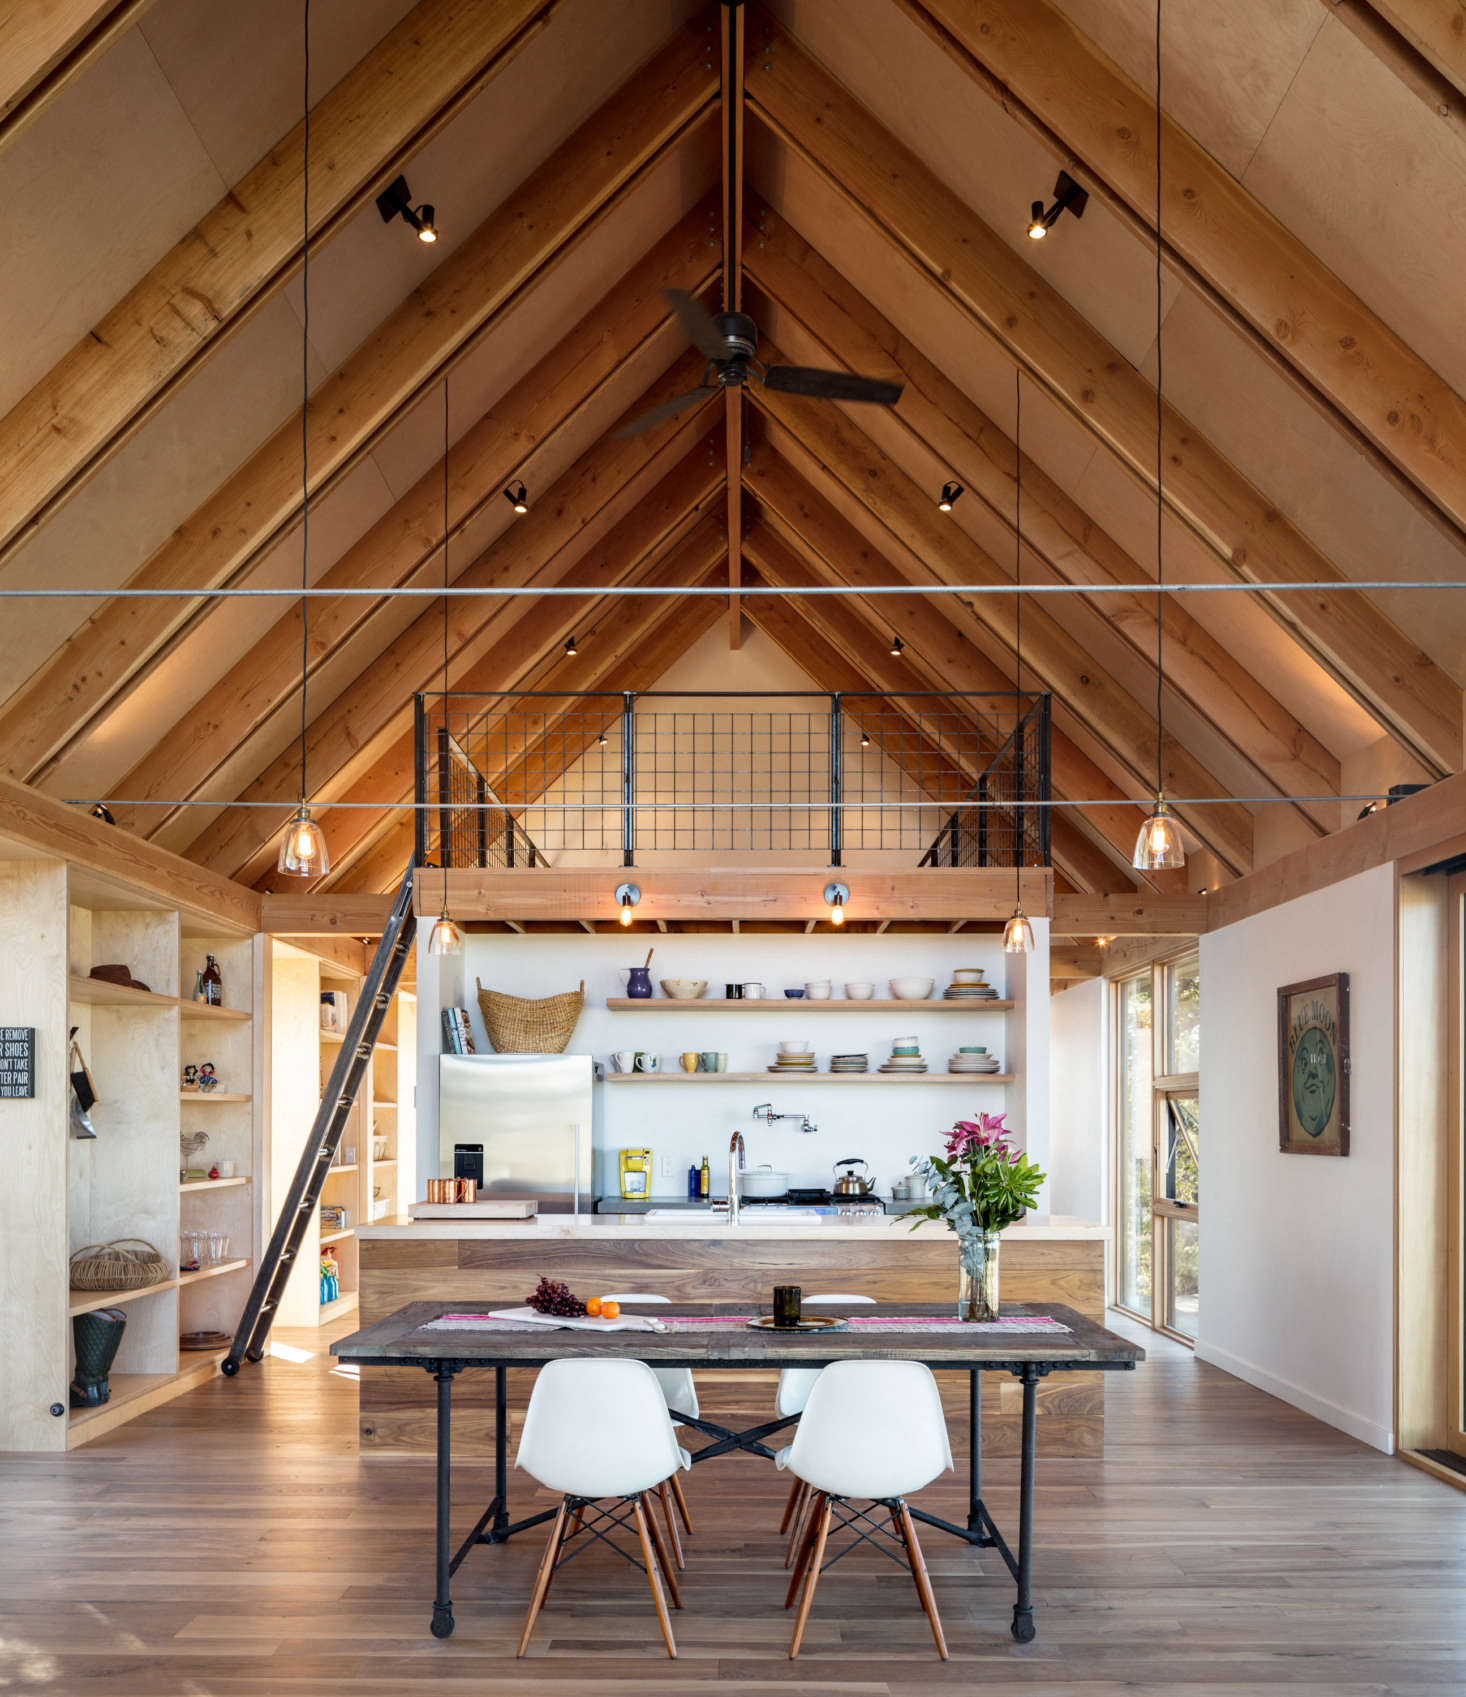 """An island, finished in the same walnut as the floor divides the kitchen from the rest of the room. Blum uses the 180 square foot loft as a painting studio, storage space, and extra guest room. """"It's accessed by a ladder and is flexible space that keeps the main level clutter free,"""" says del Gaudio."""